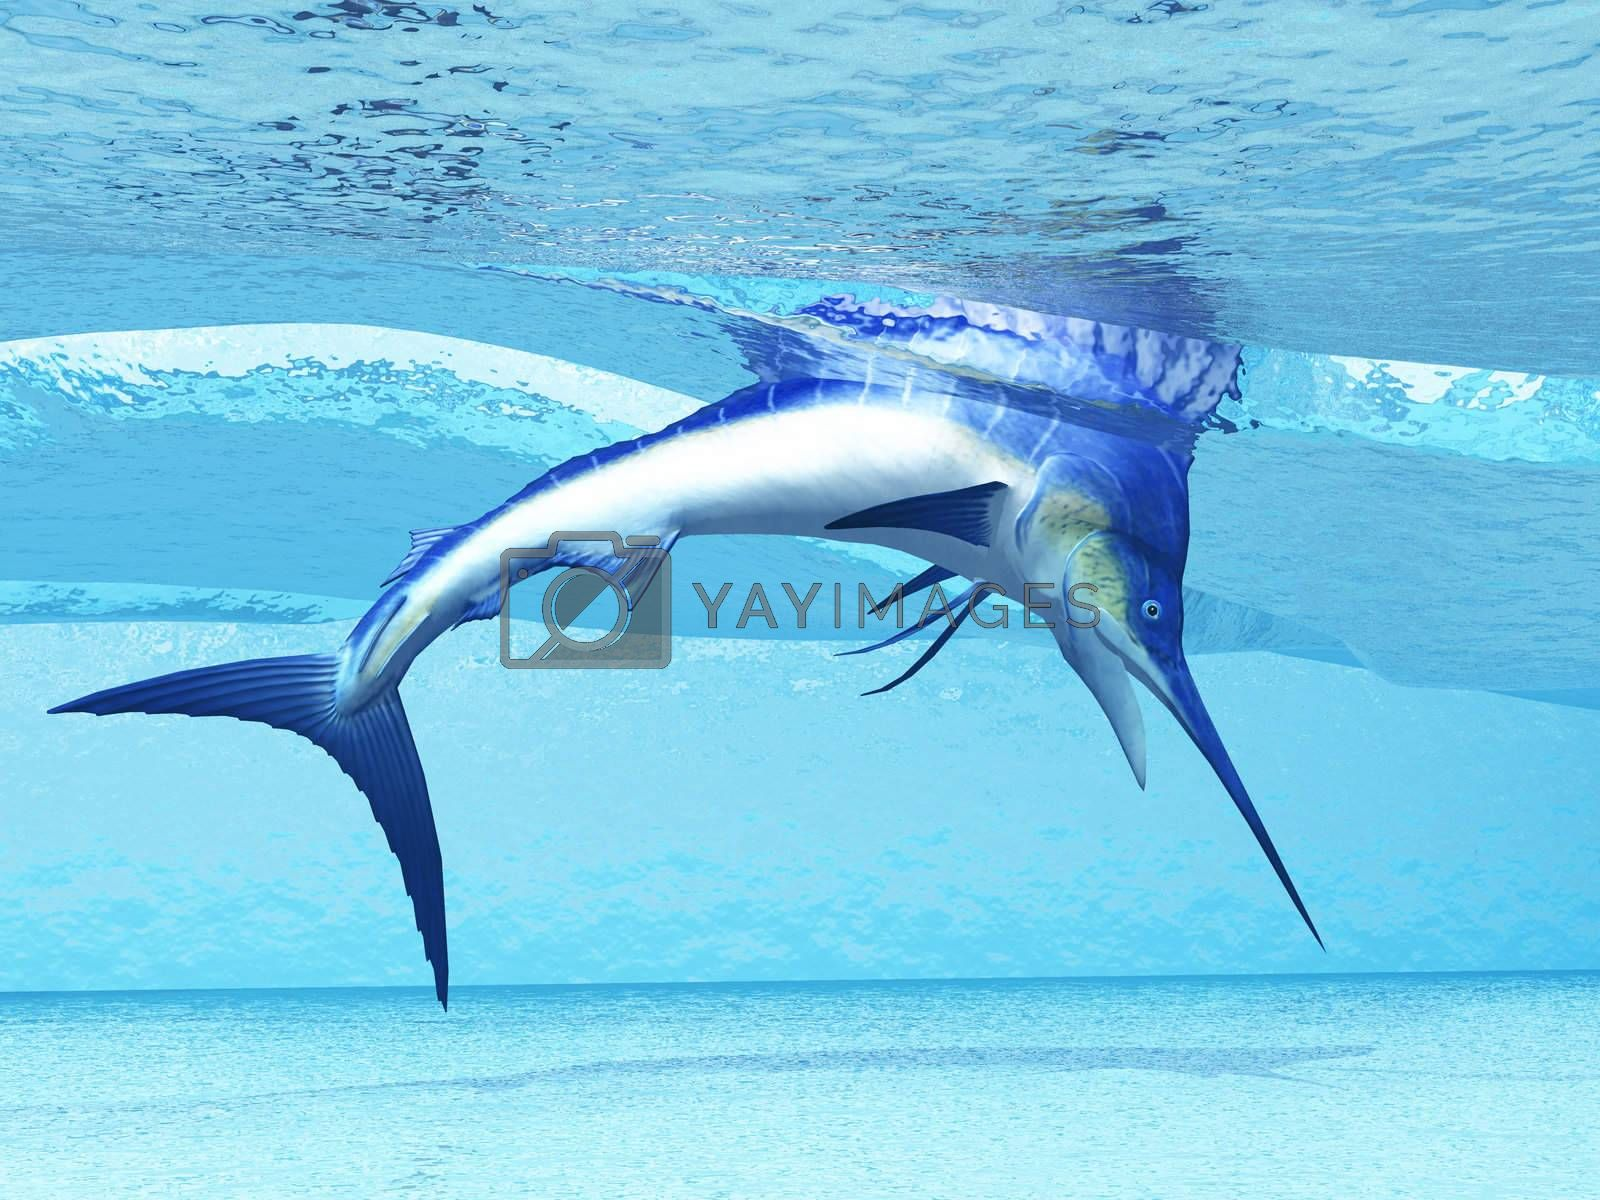 A Marlin dives in shallow waves looking for fish to eat.